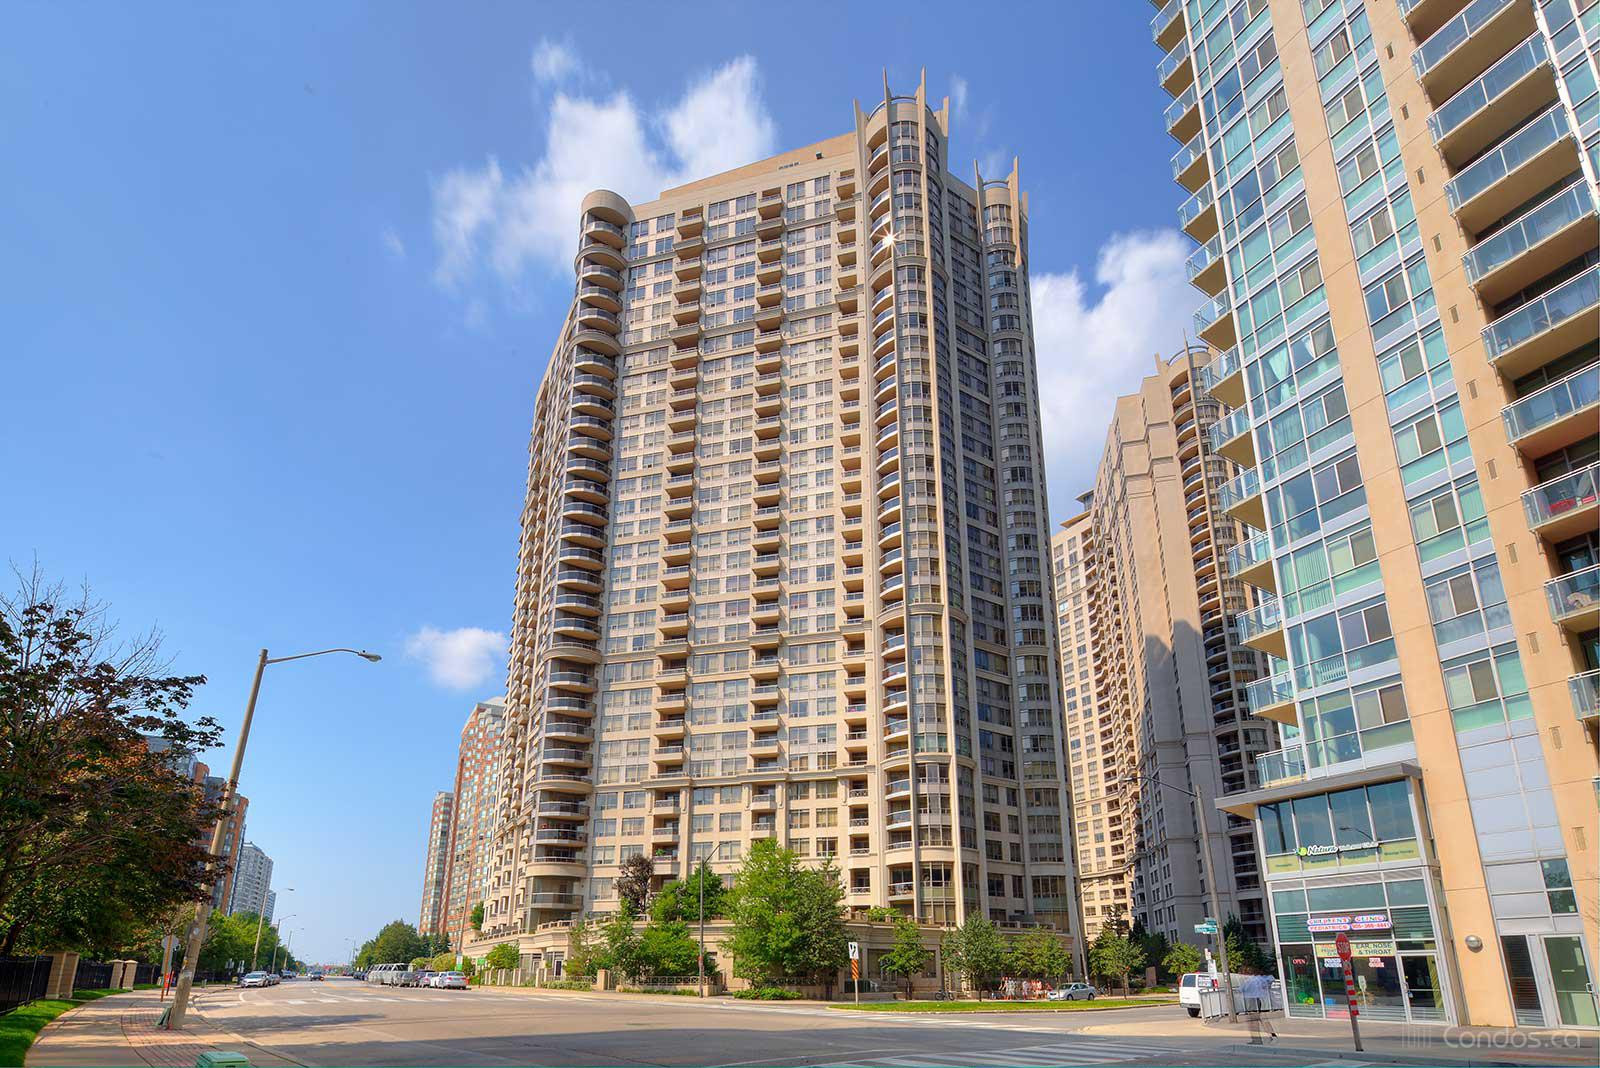 Ovation at 3880 Duke of York Blvd, Mississauga 0